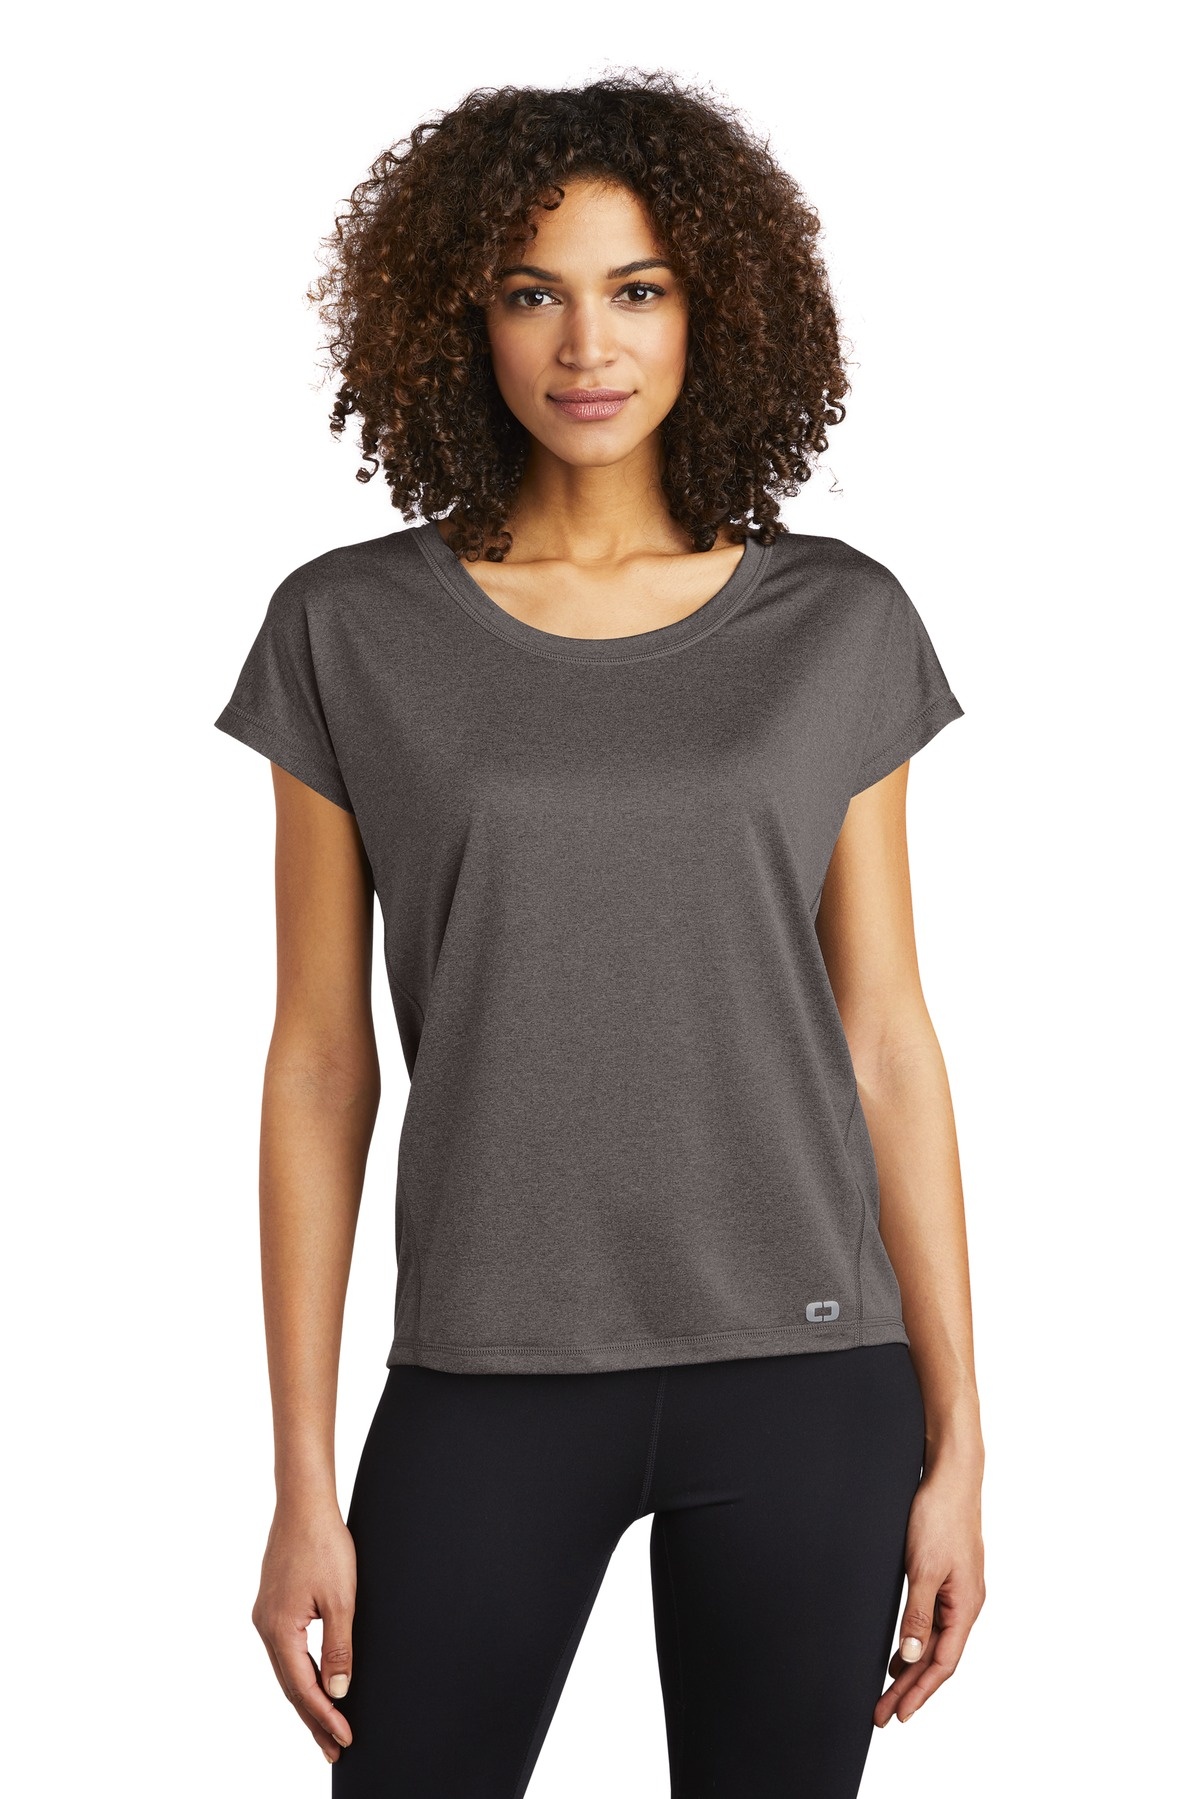 OGIO  ®  ENDURANCE Ladies Pulse Dolman Tee LOE324 - Gear Grey